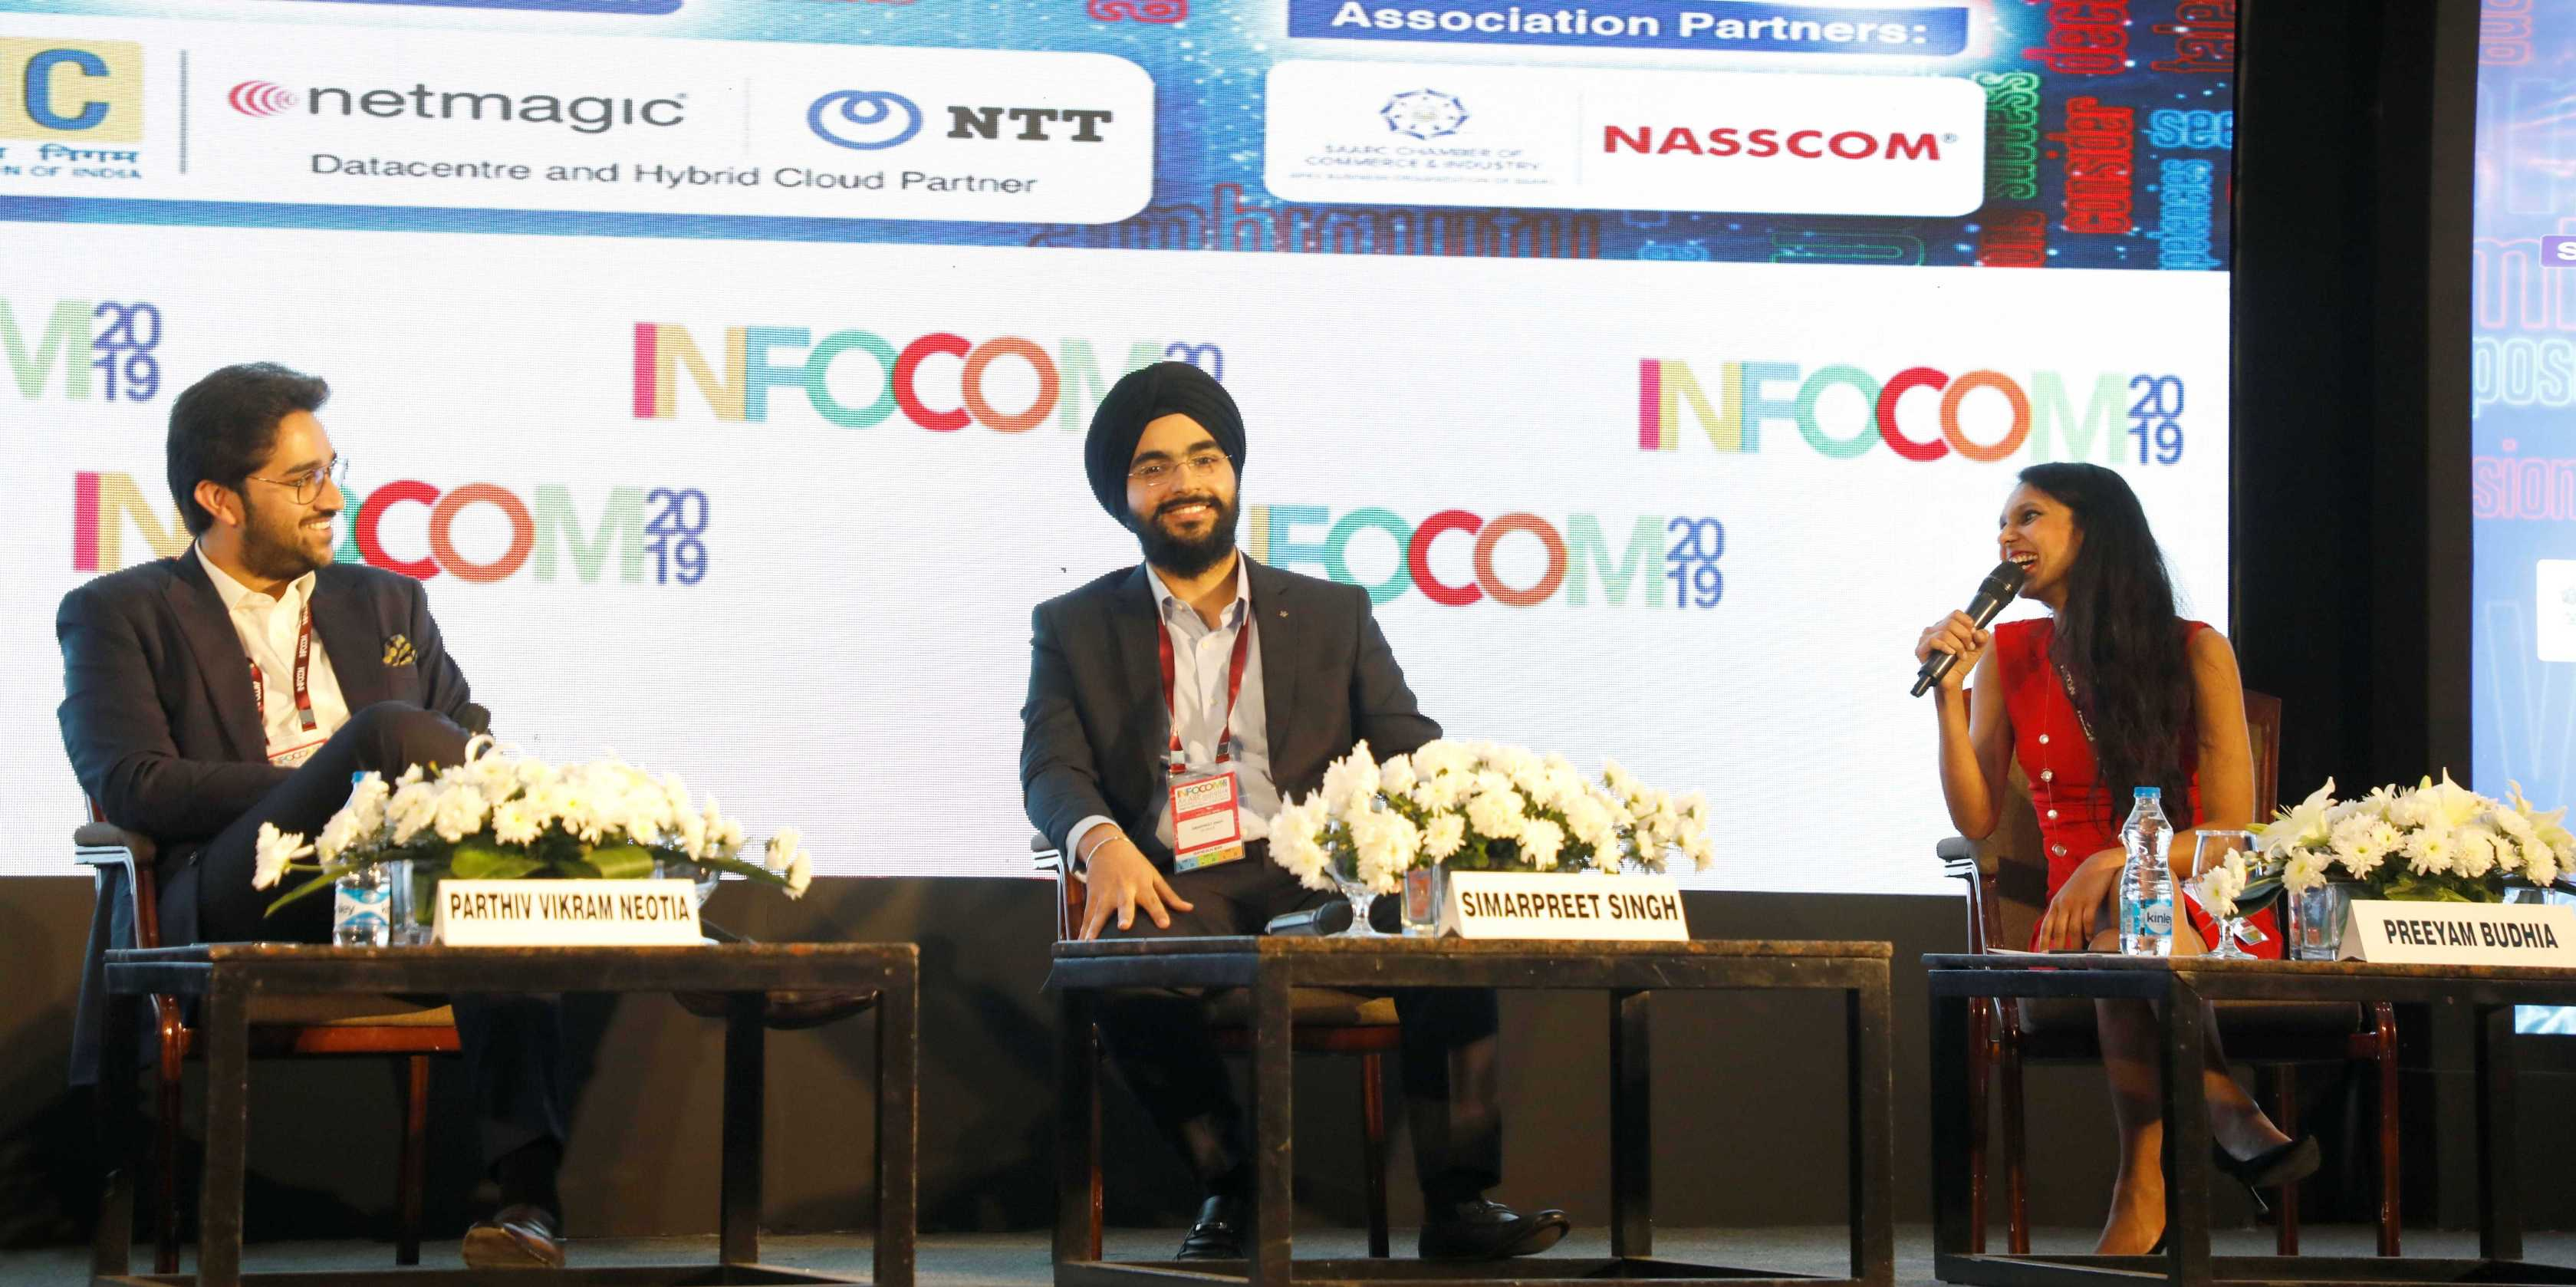 Preeyam Budhia speaking at Infocom 2019